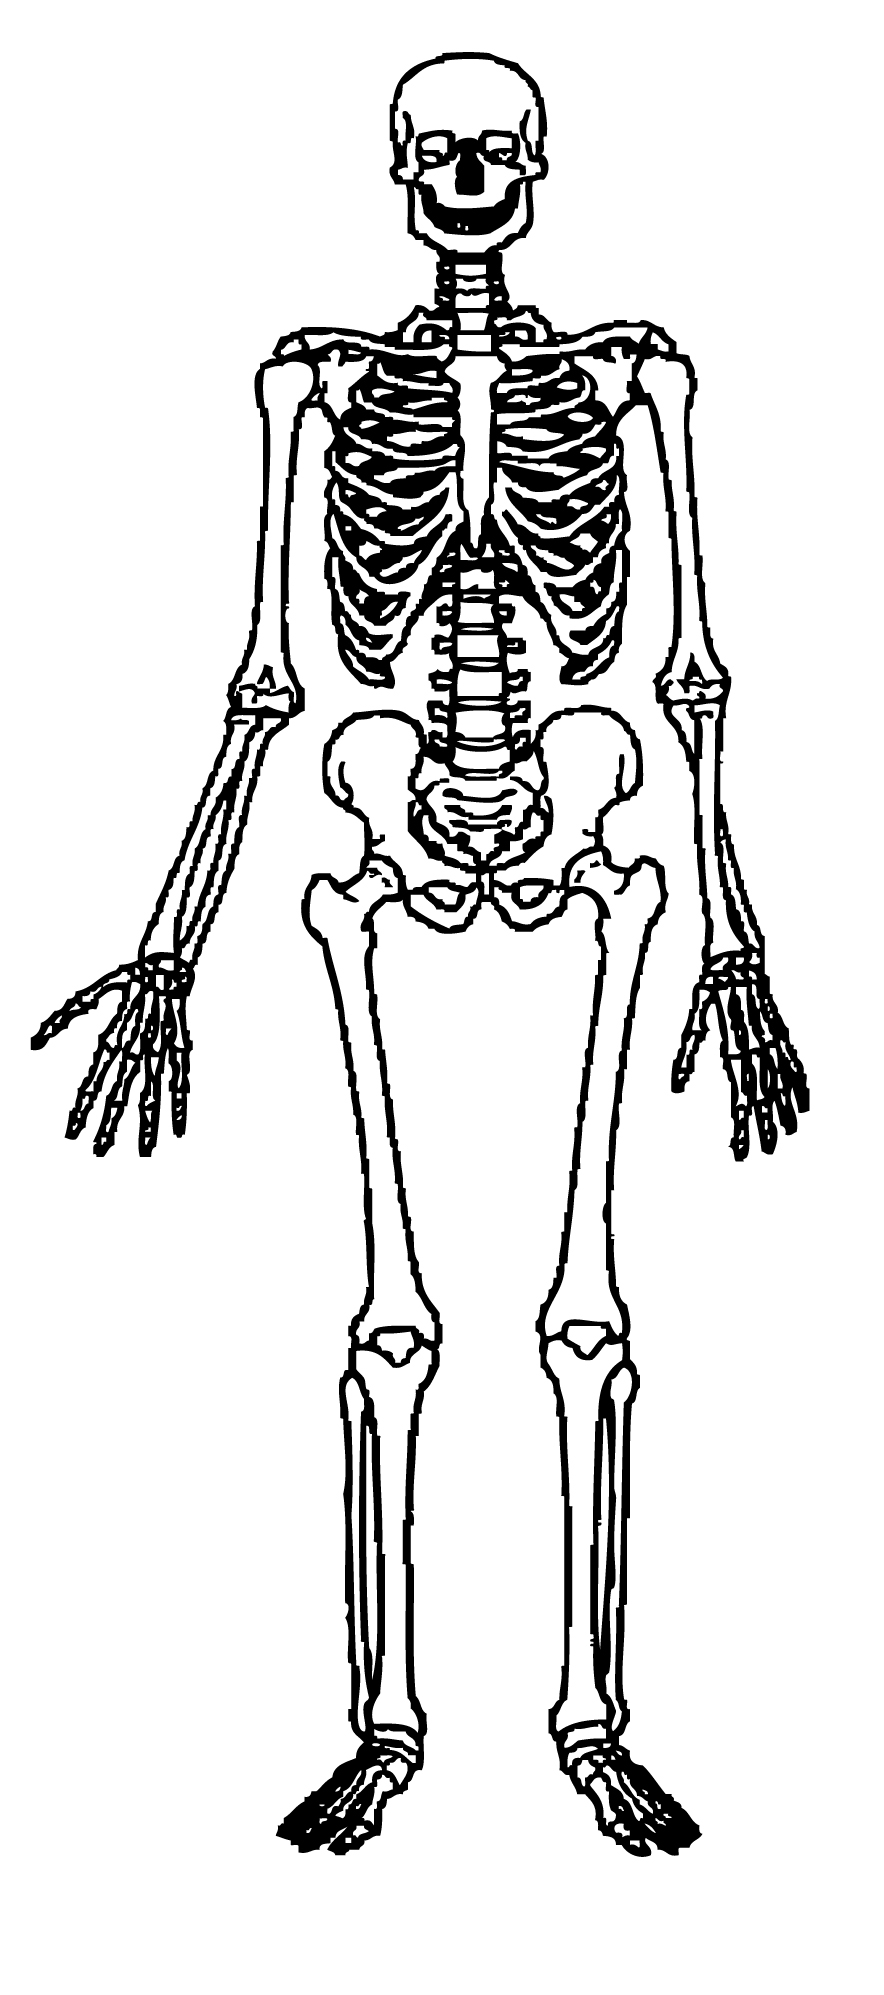 Human Skeleton Clipart Free Cliparts Clipart Best Clipart Best